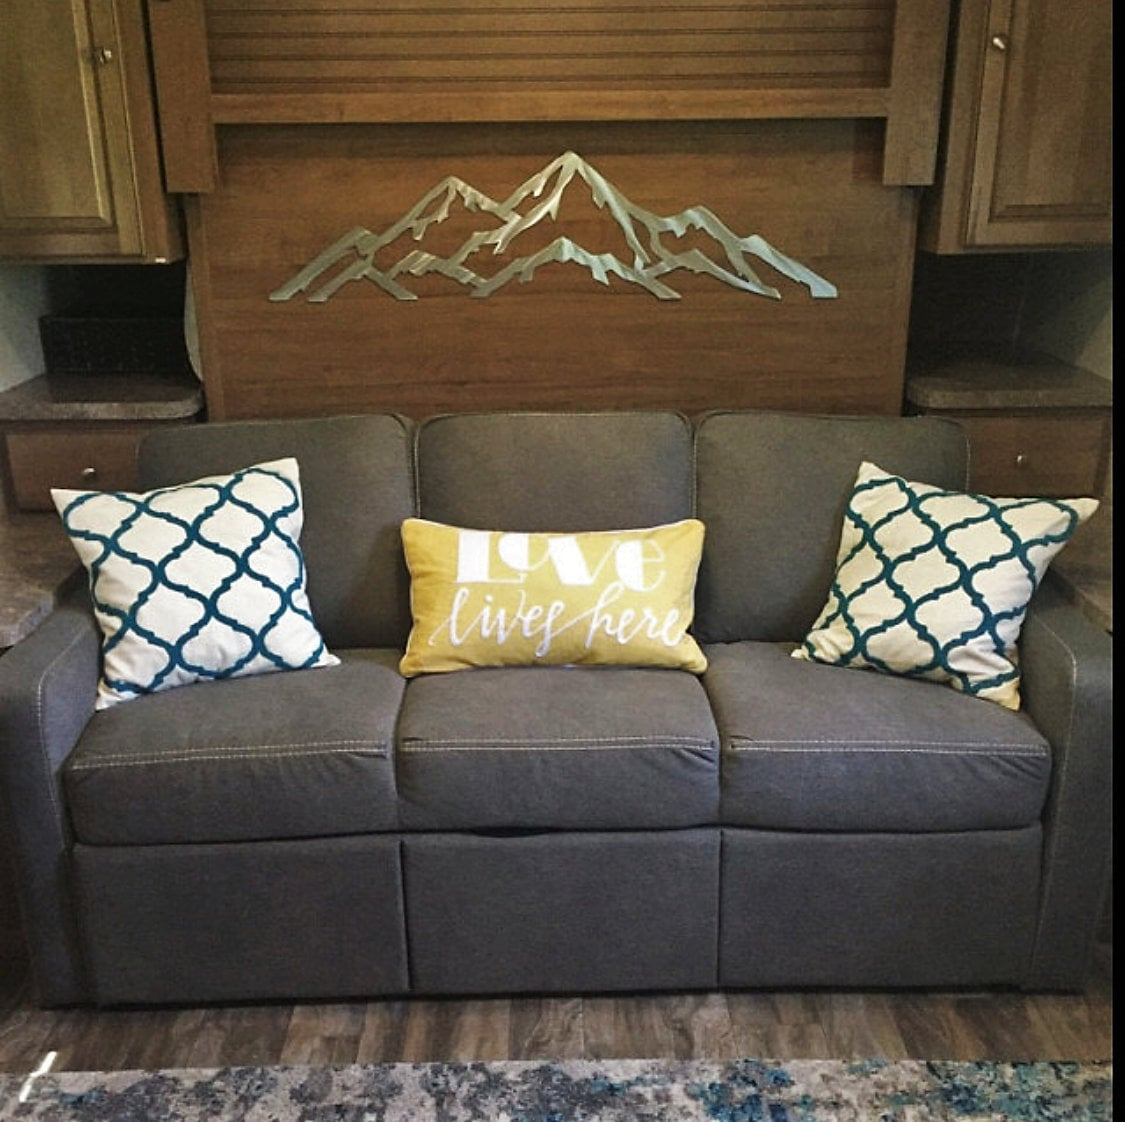 Metal Wall Art Mountains. Aspen Mountain, Aspen Highlands And Buttermilk.  Skiing And Snowboarding. Gift Adventures